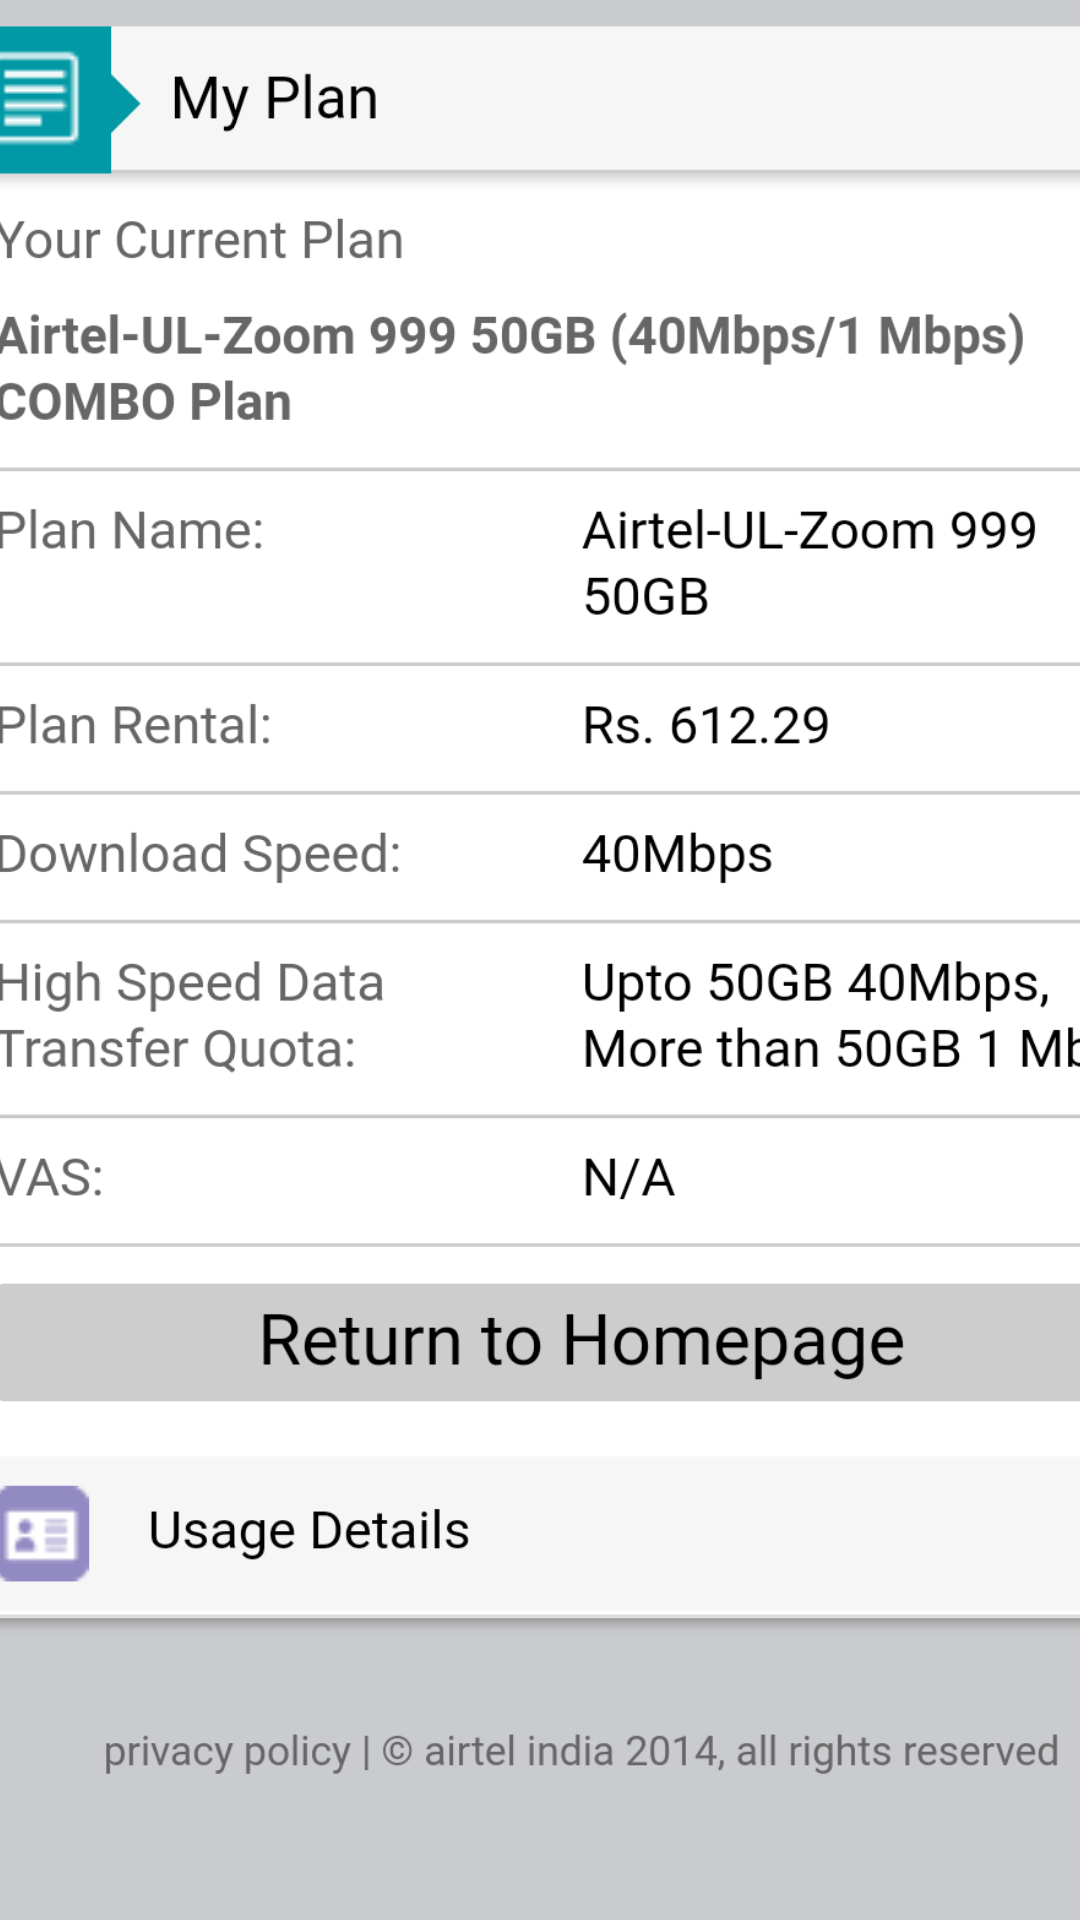 What's the Airtel broadband speed after FUP? - Quora